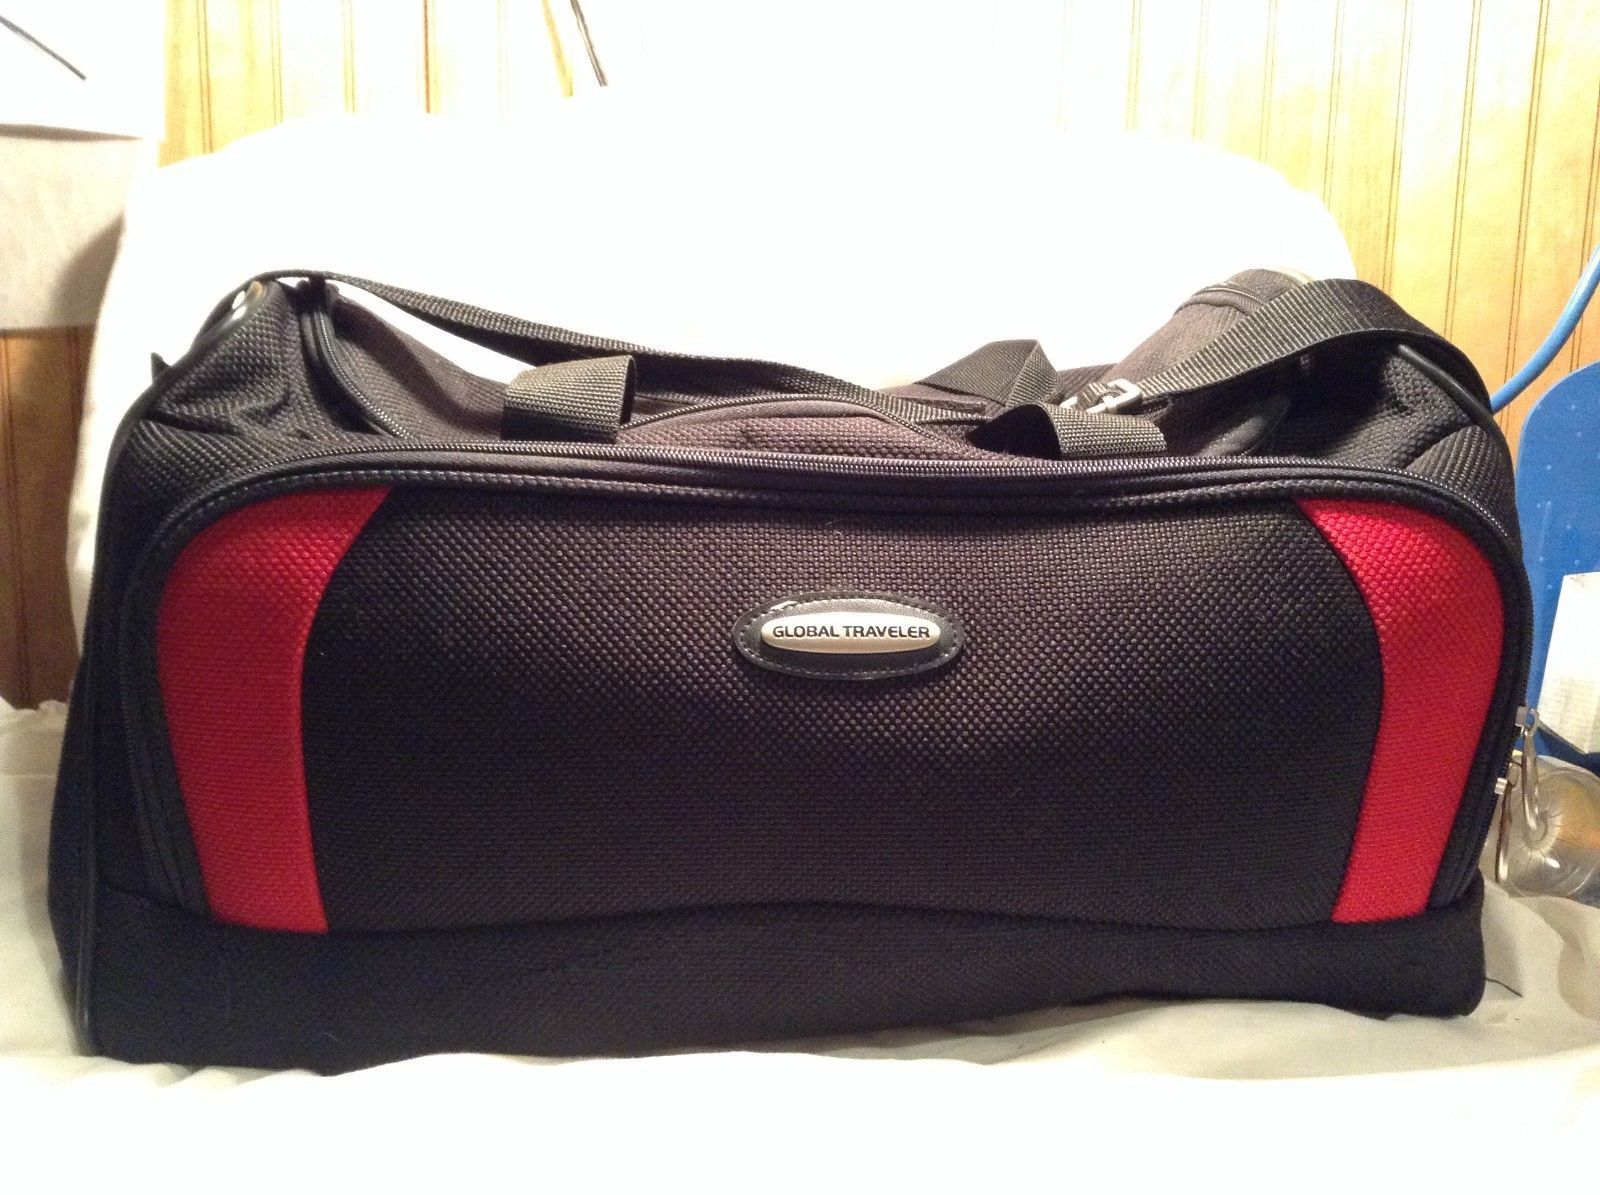 Black/Red Global Travelers Bag w Removable Display Shelves